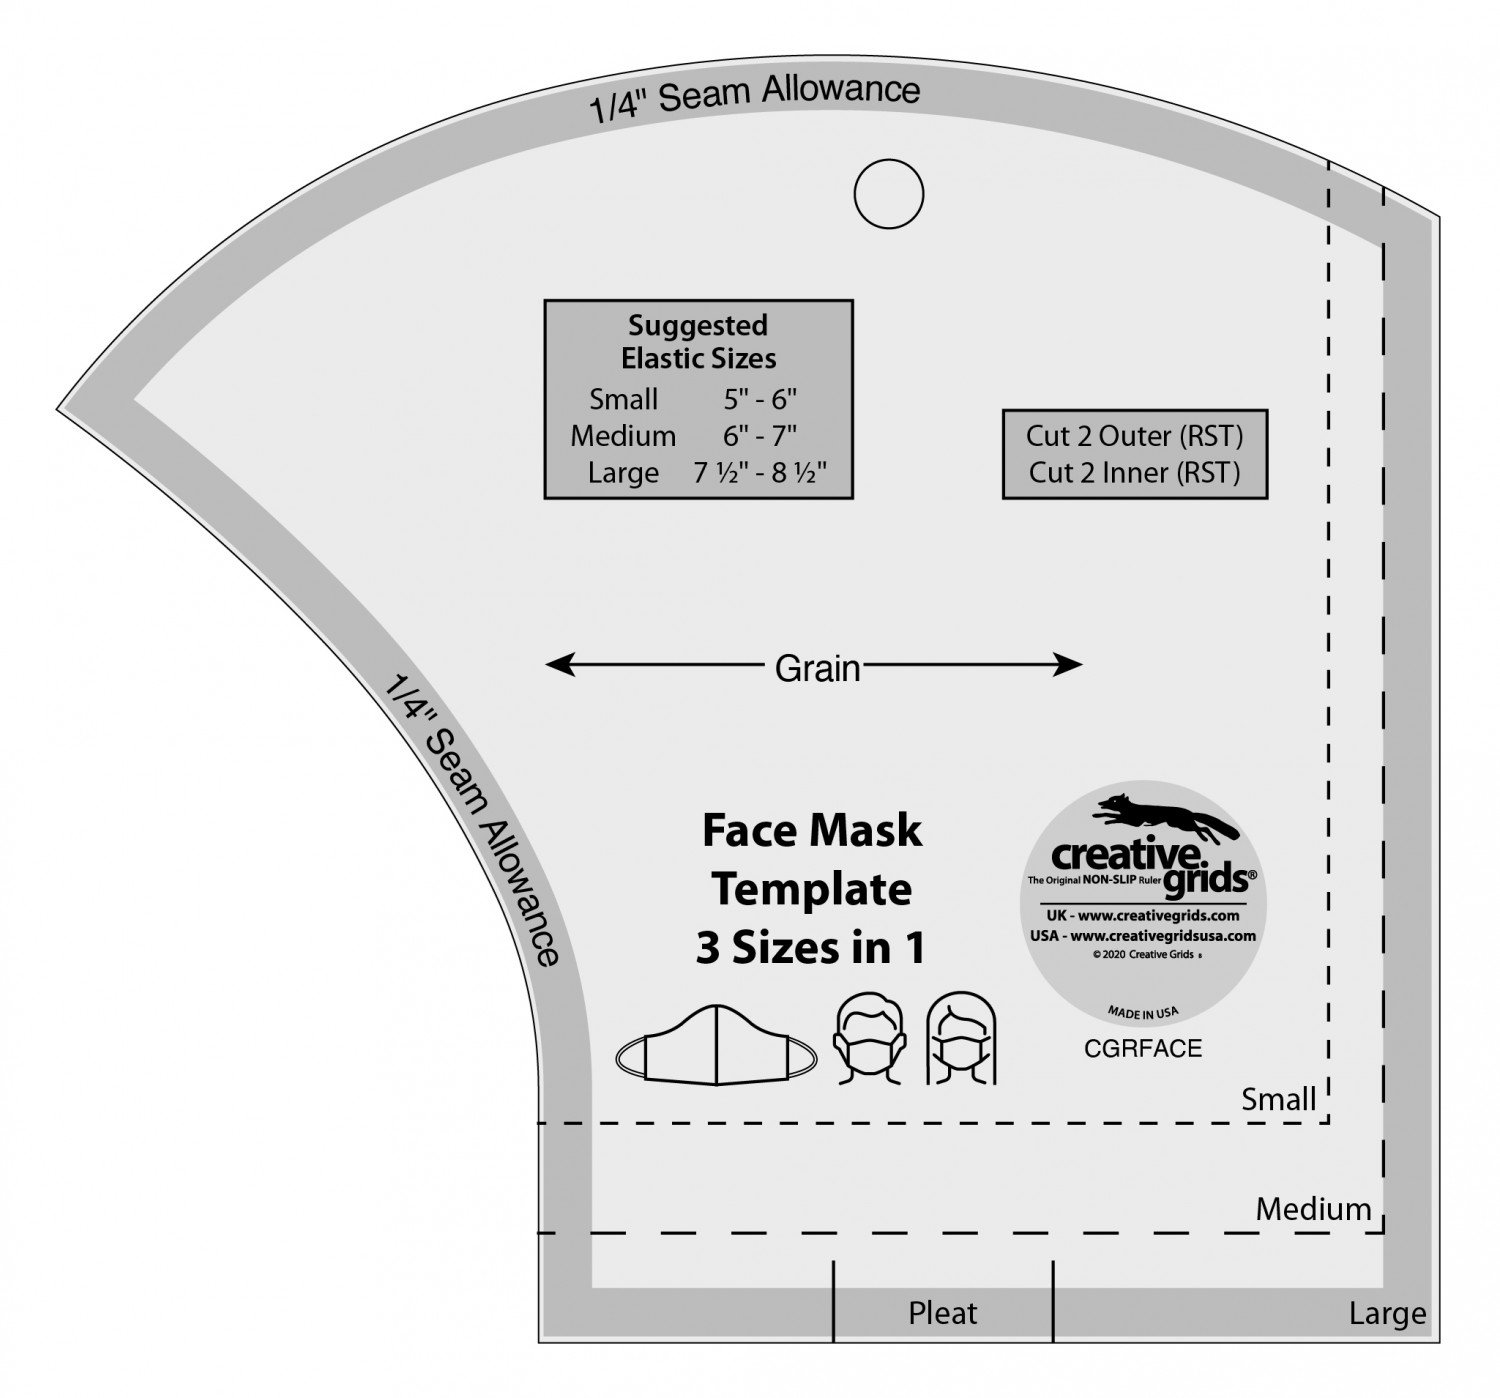 Face Mask Template (3 Sizes in 1) by Creative Grids